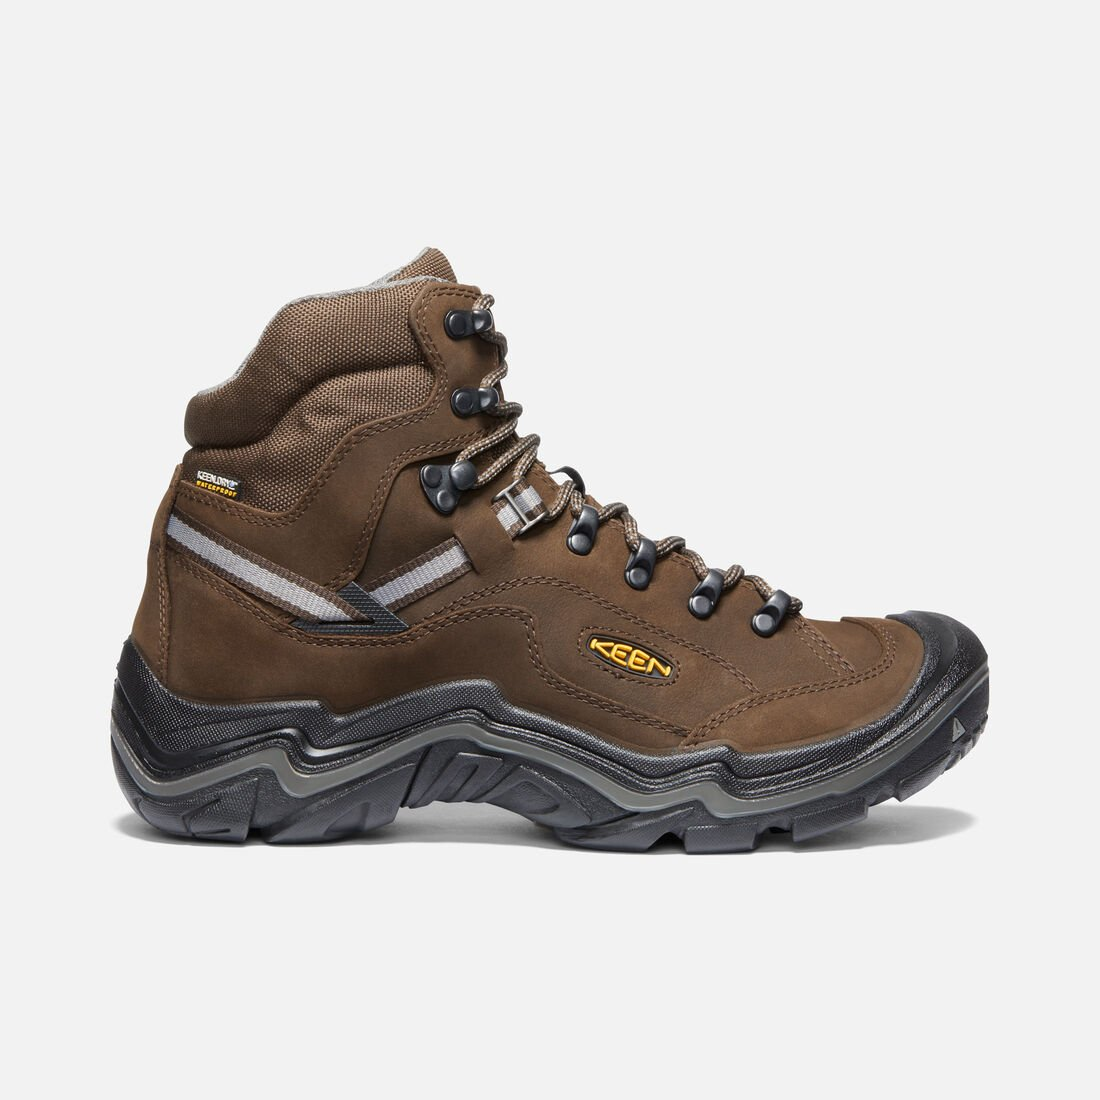 13bce55f025 Men's Durand II Mid - Waterproof Hiking Boots | KEEN Footwear